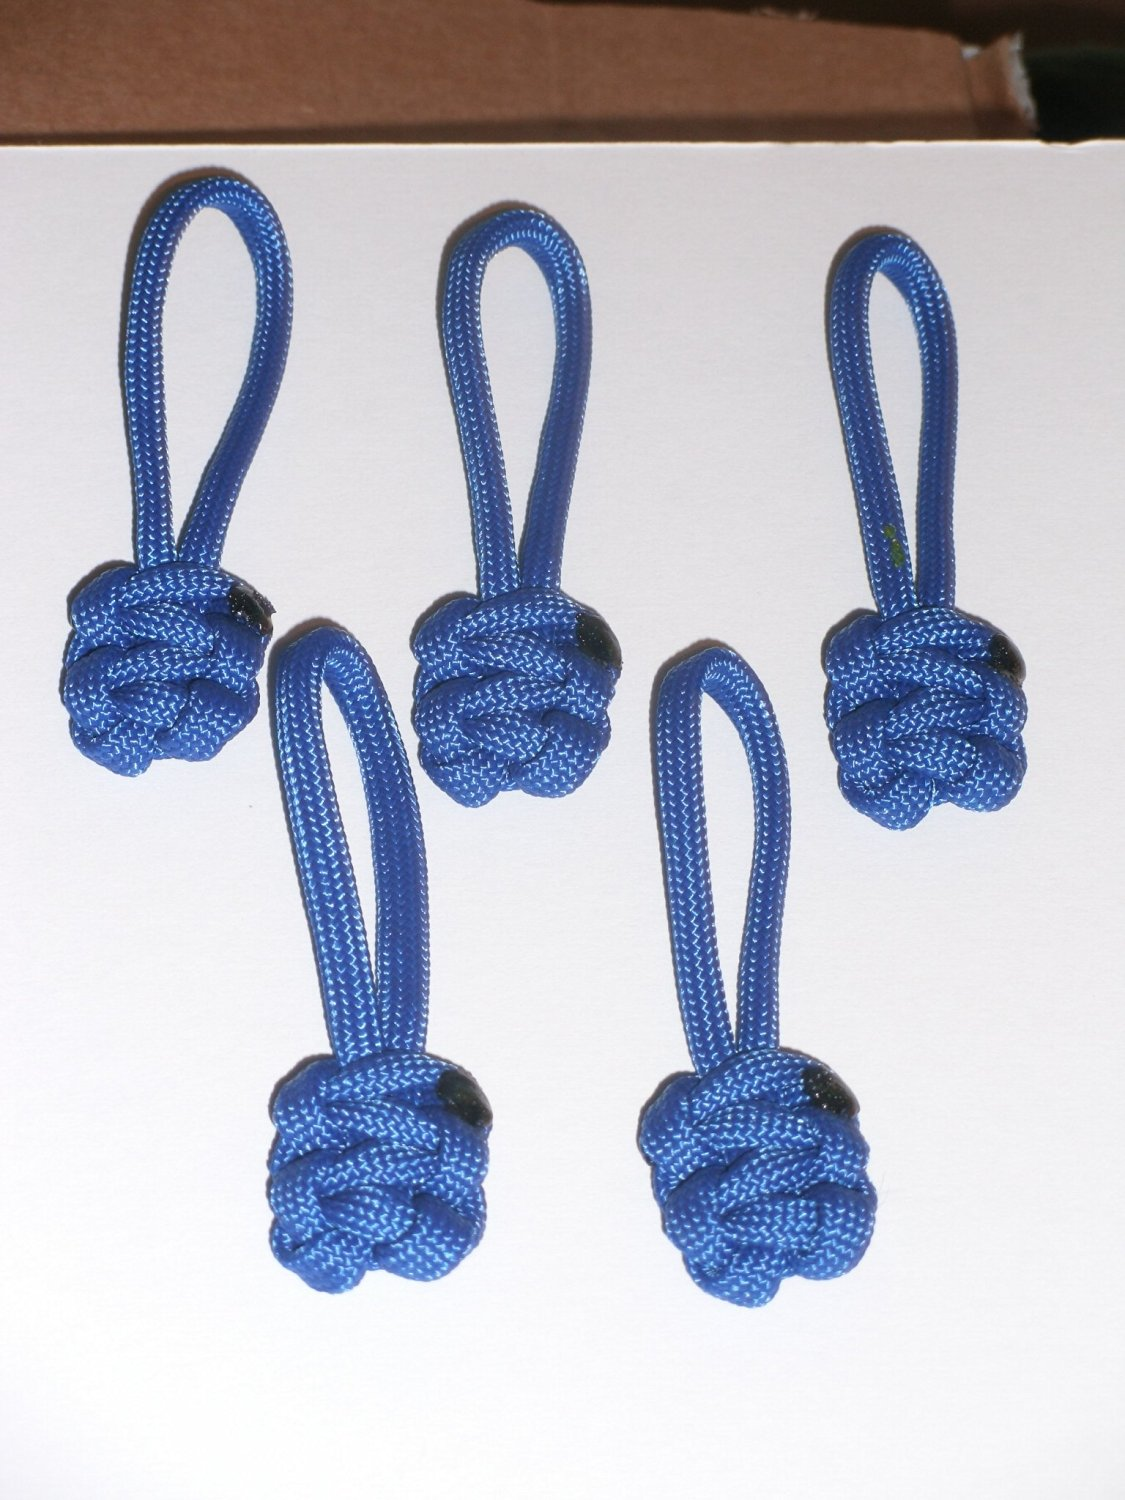 RedVex Paracord Zipper Pulls / Lanyards - Lot of 5 - ~2.5 - Blue